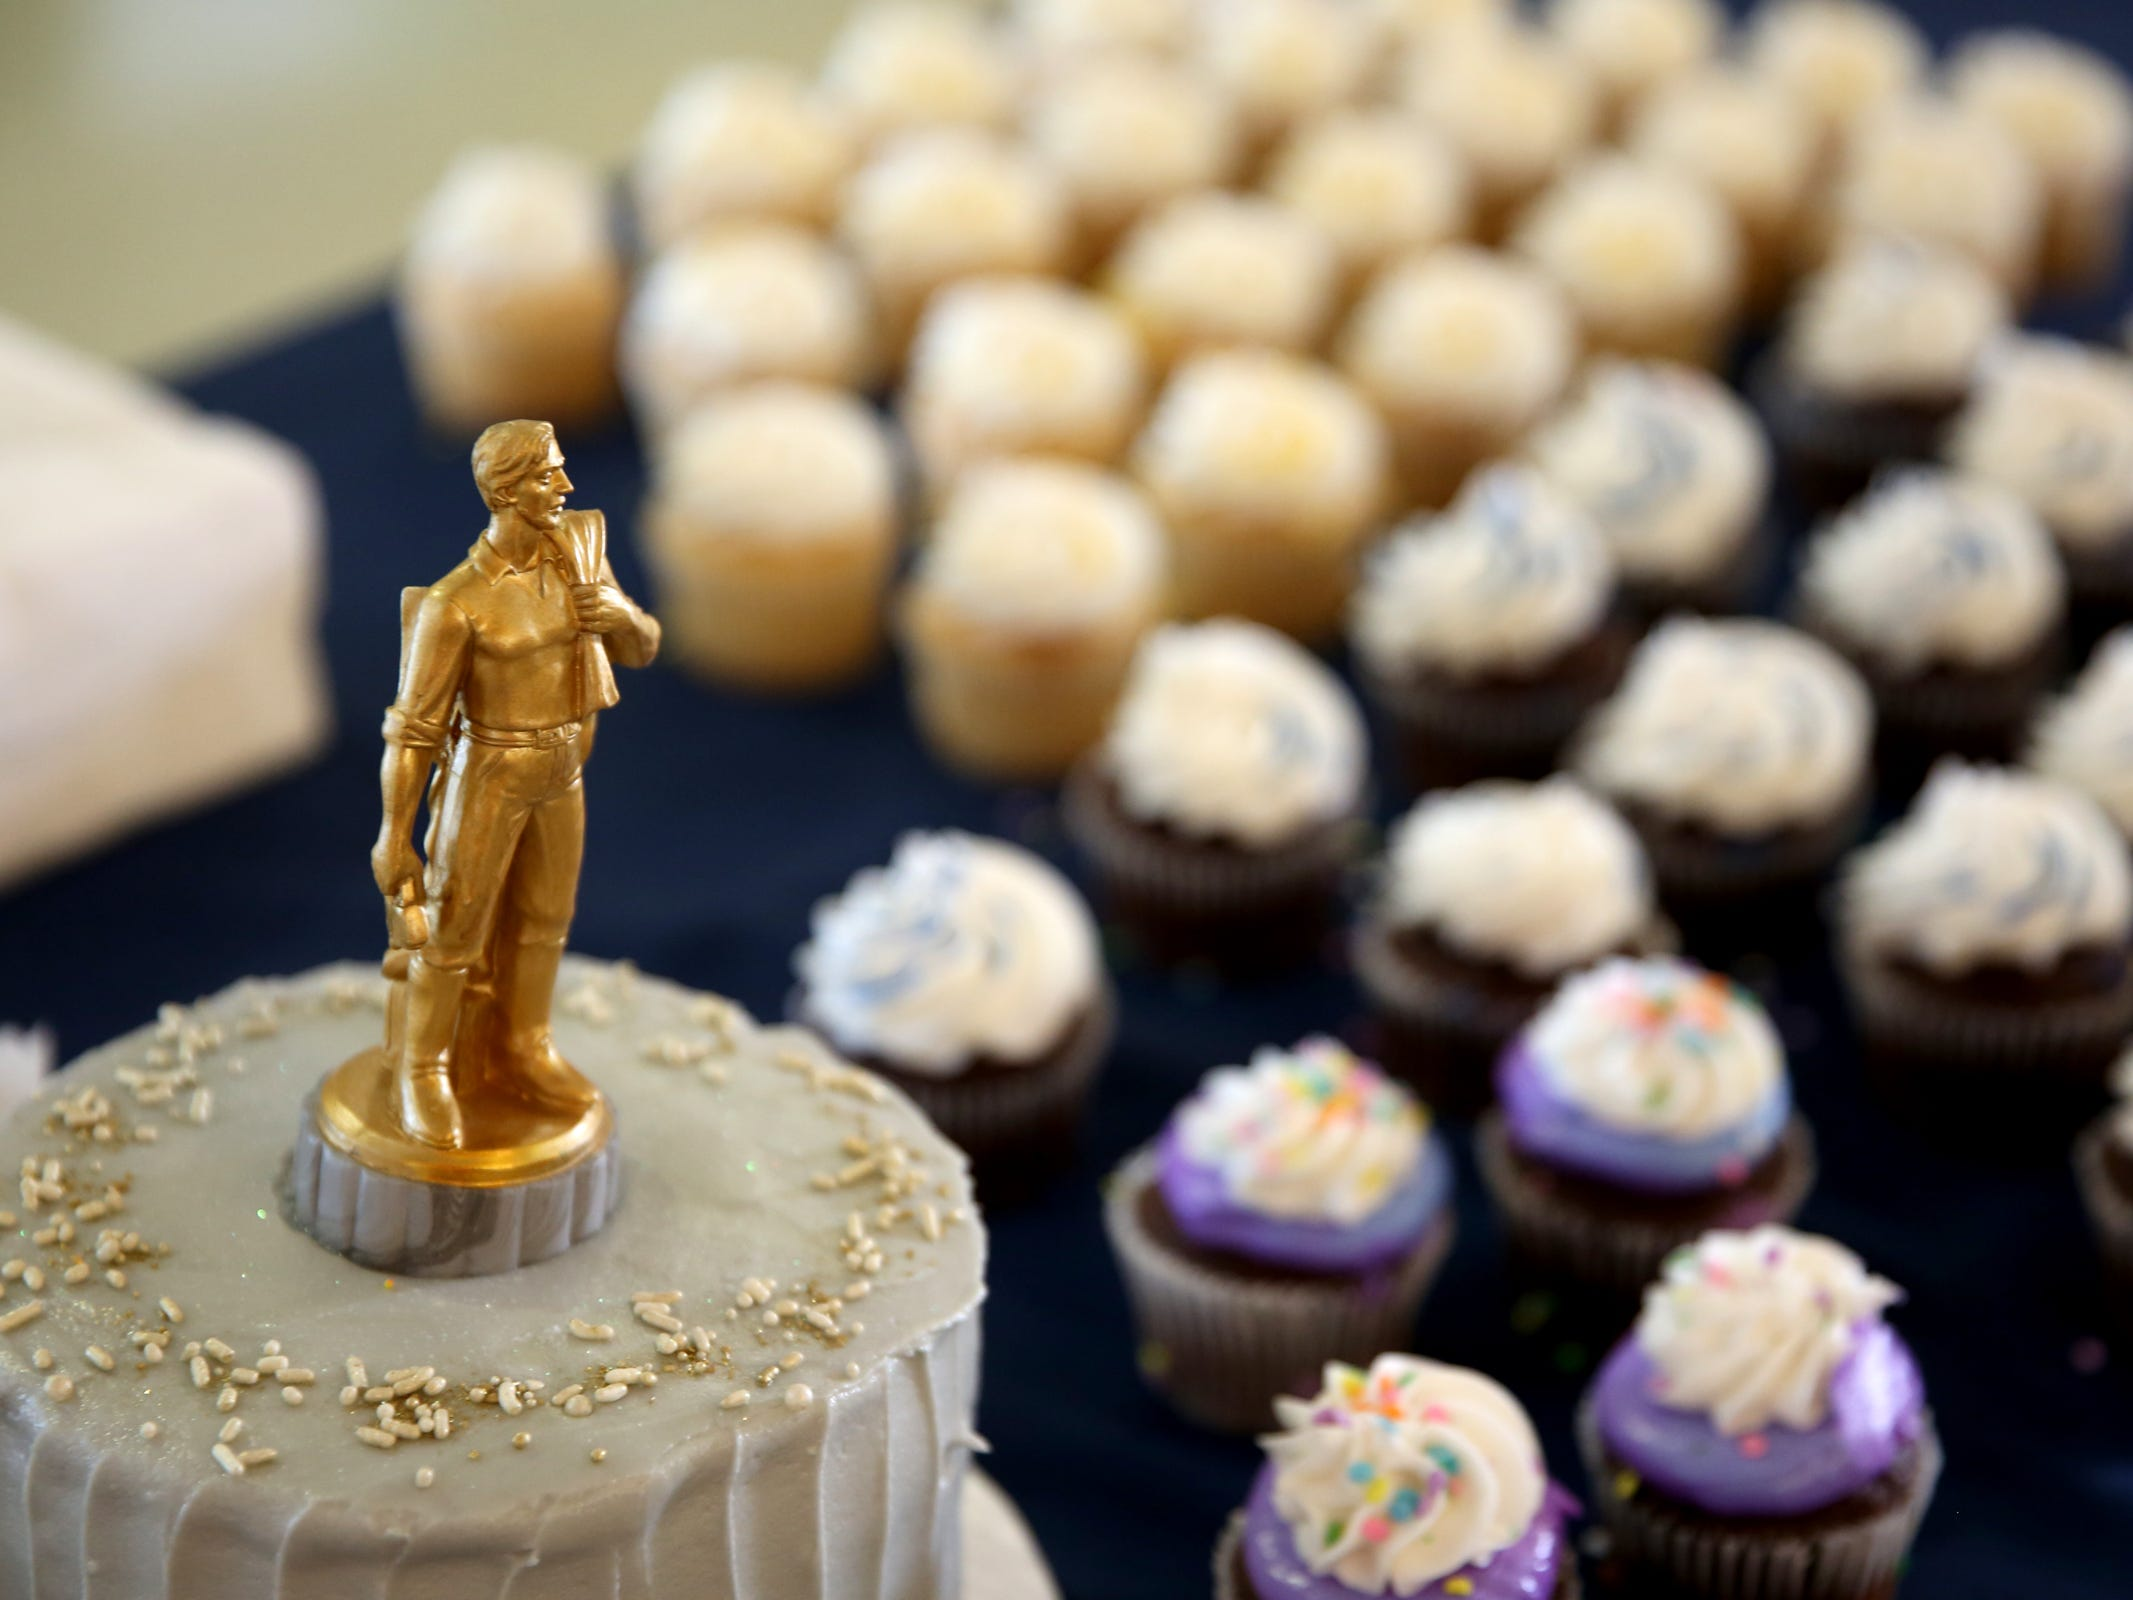 Cupcakes are served during an 80th birthday party for the Oregon Pioneer, aka the Gold Man, at the Oregon State Capitol in Salem on Tuesday, Sep. 18, 2018.